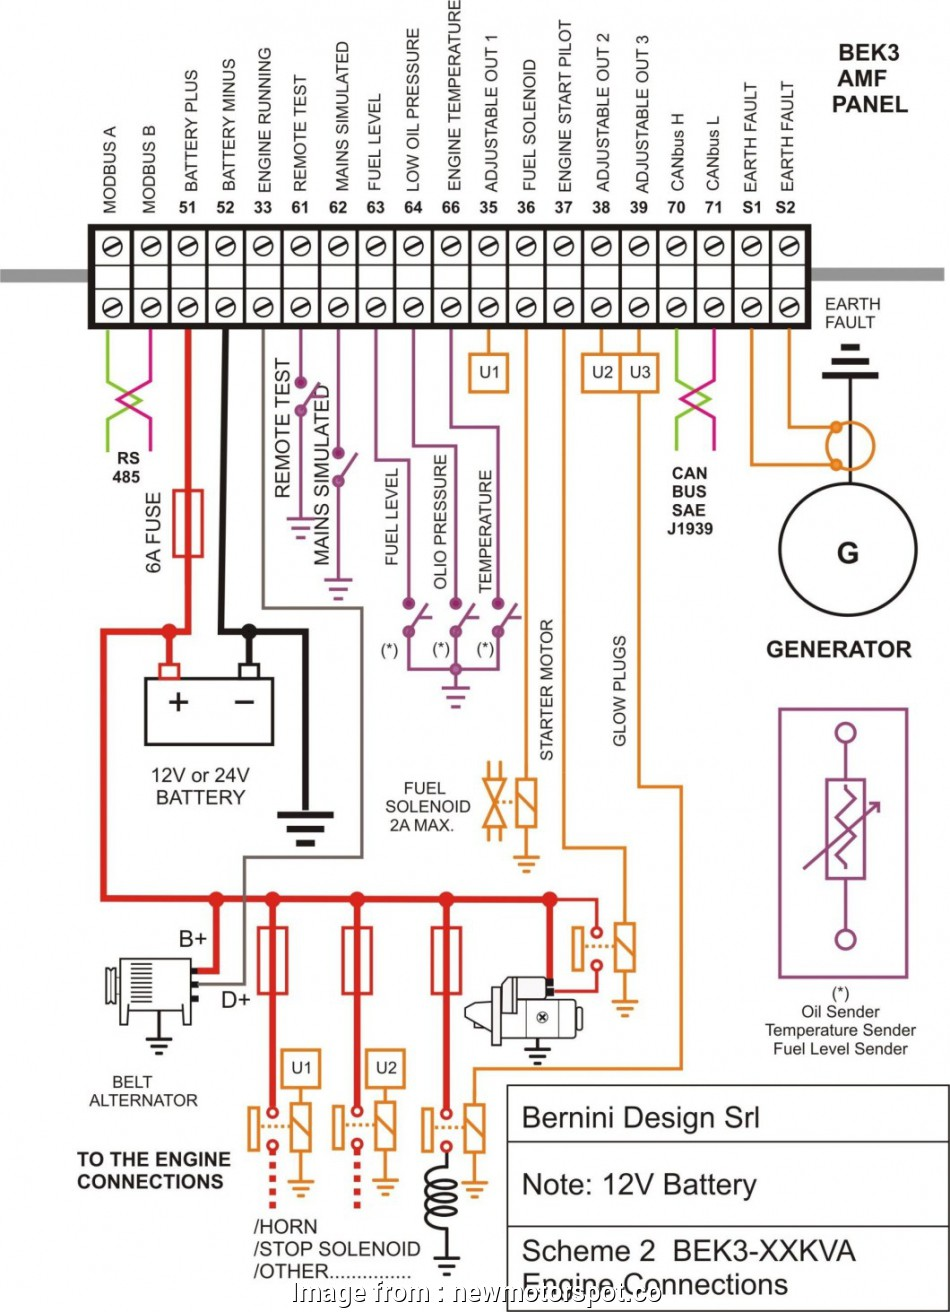 Delta Wiring Diagram from tonetastic.info